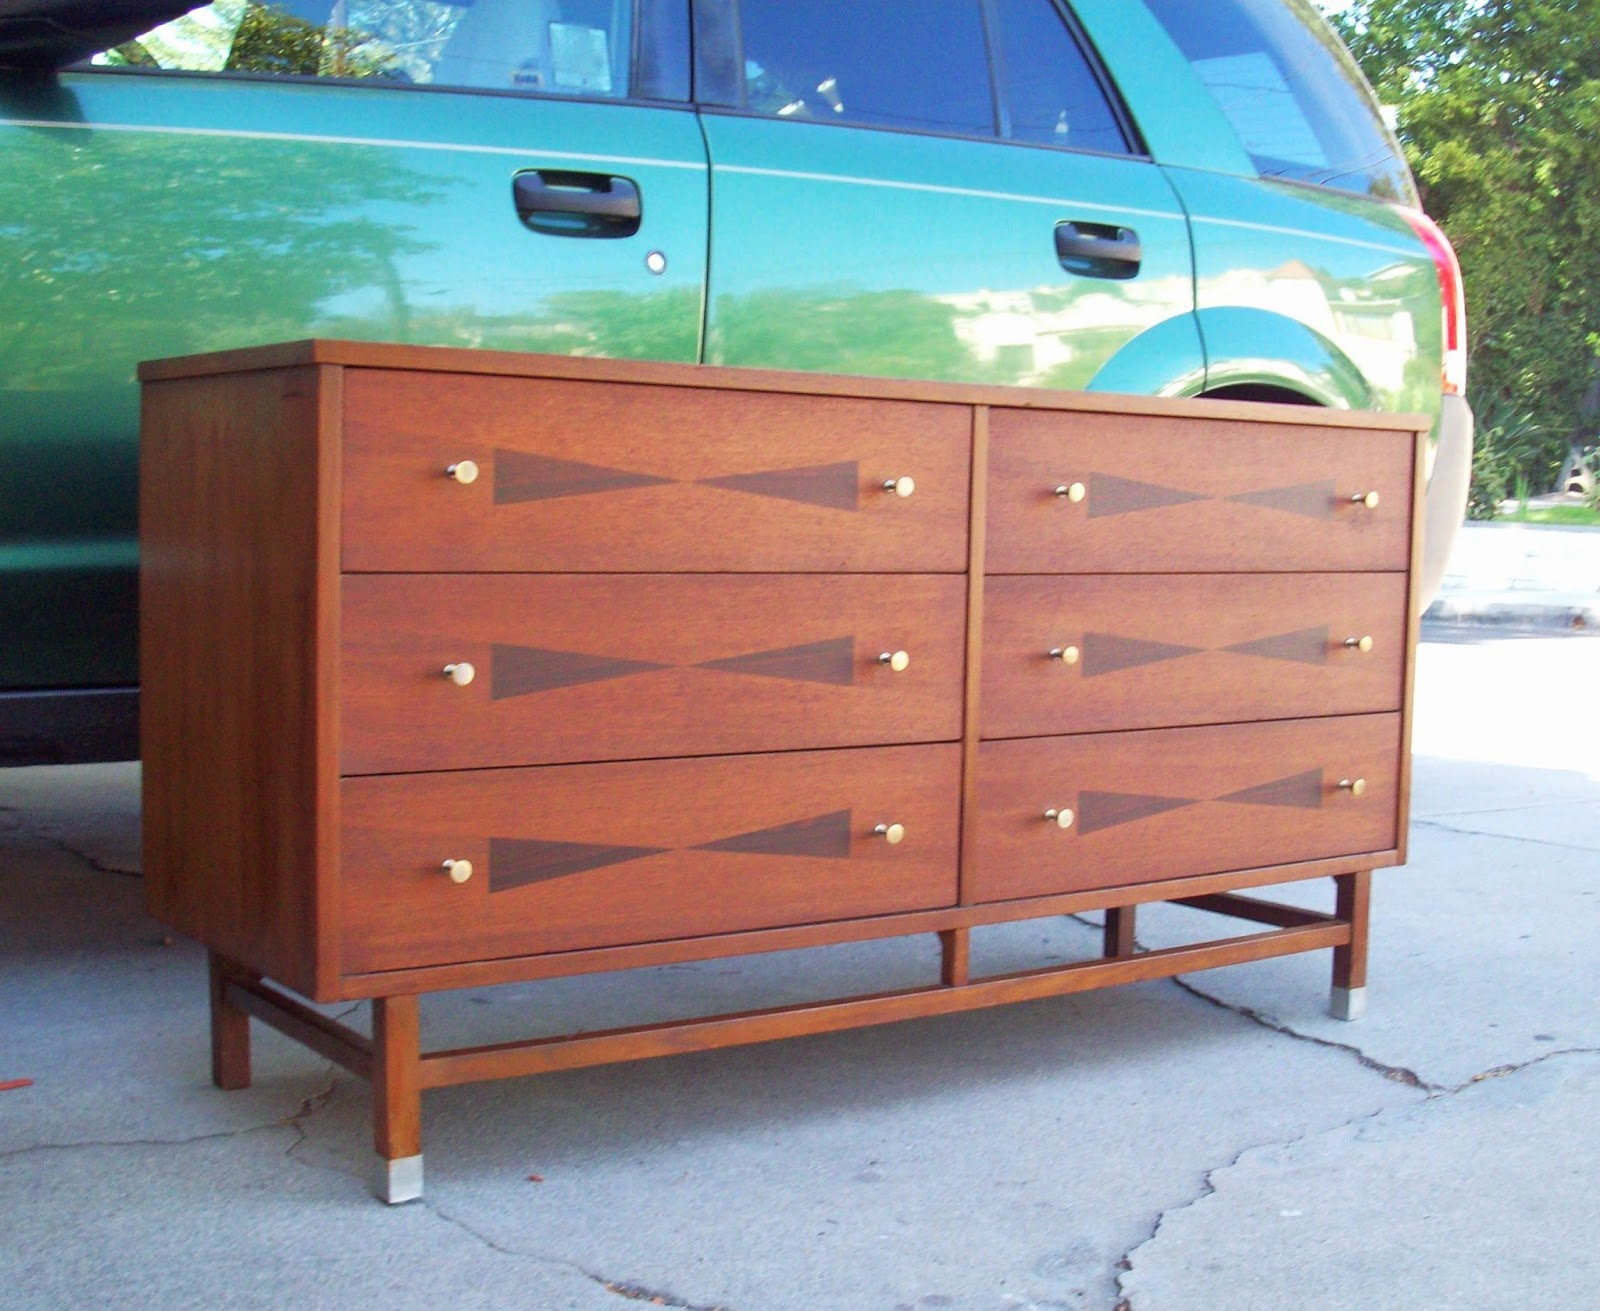 SORRY SOLD______True Vintage 1960u0027s Mid Century Dresser / Credenza. Rare  Bowtie Dresser From Stanley Furniture. Beautiful Walnut Wood With Rosewood  Inlay.